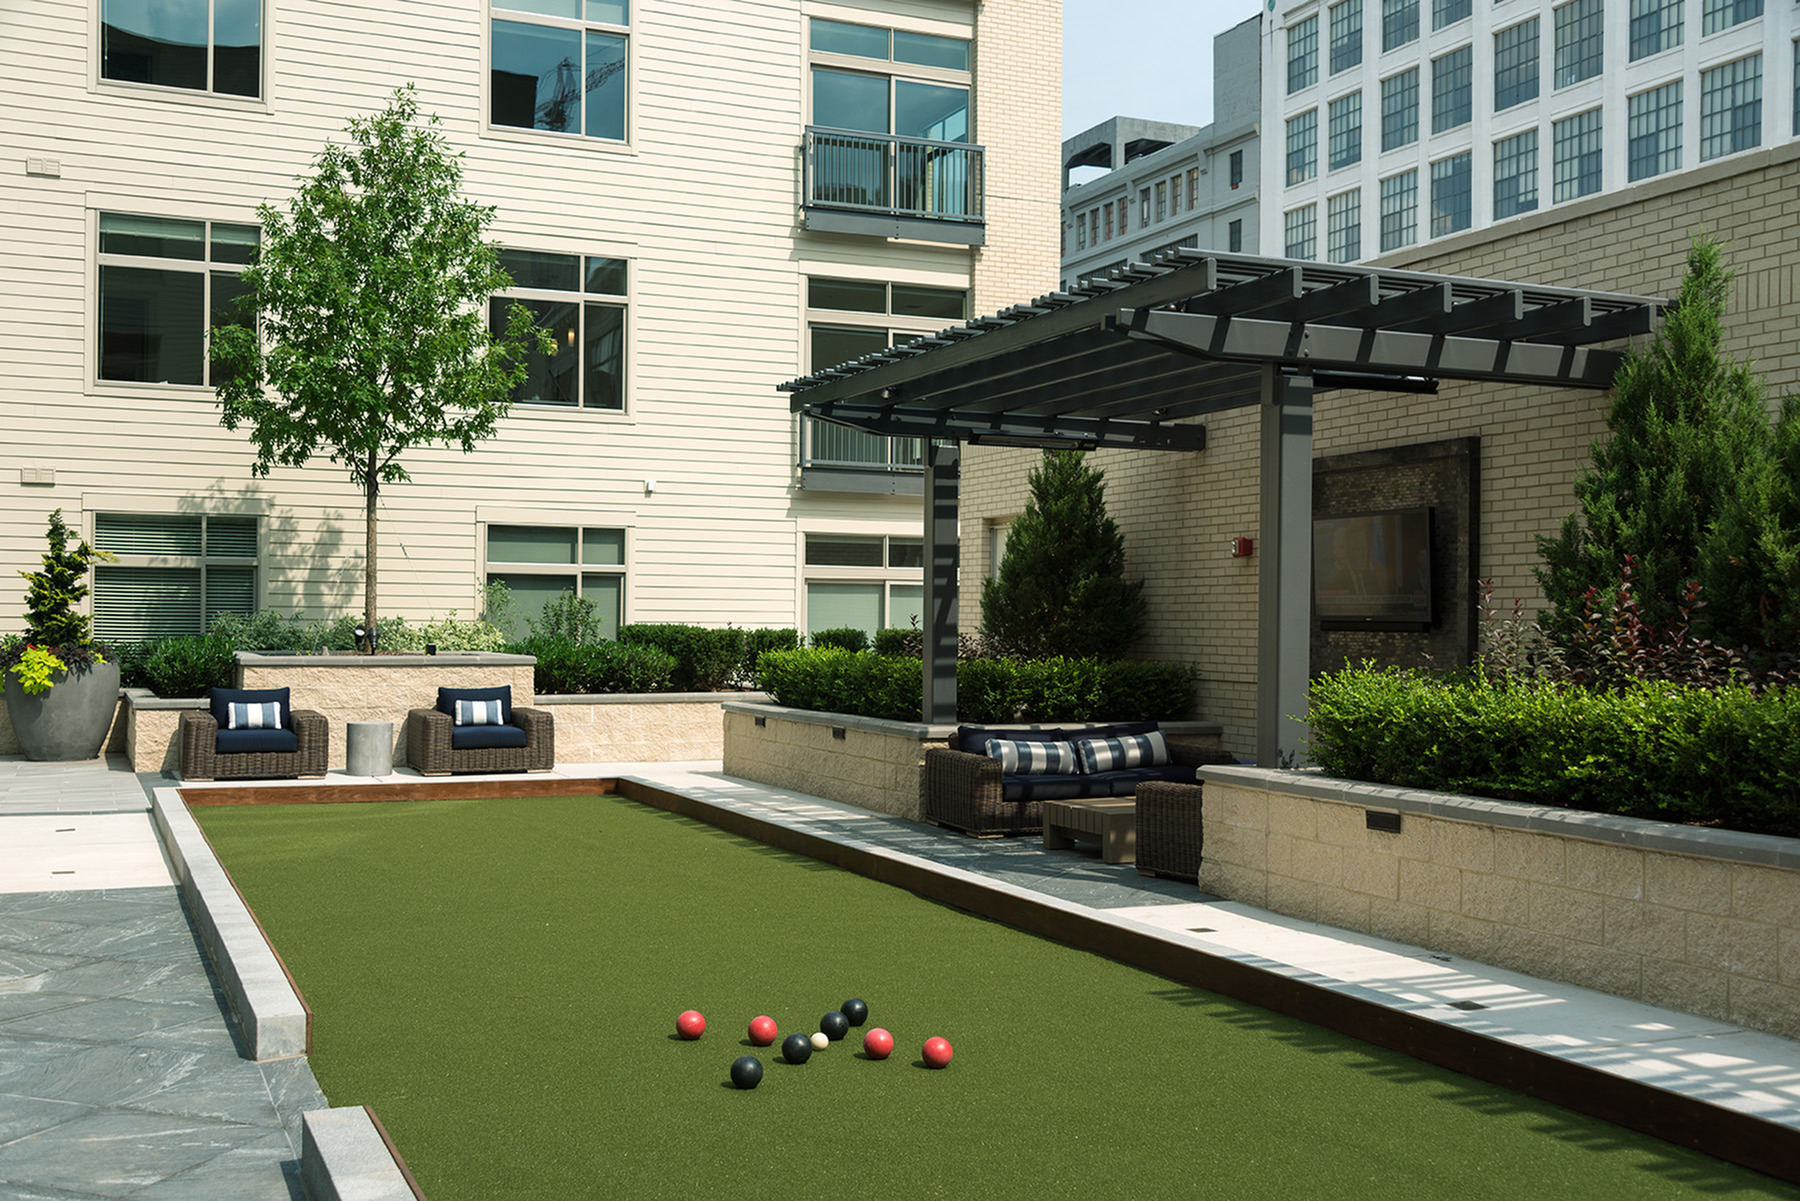 Bocce ball court at Hanover North Broad